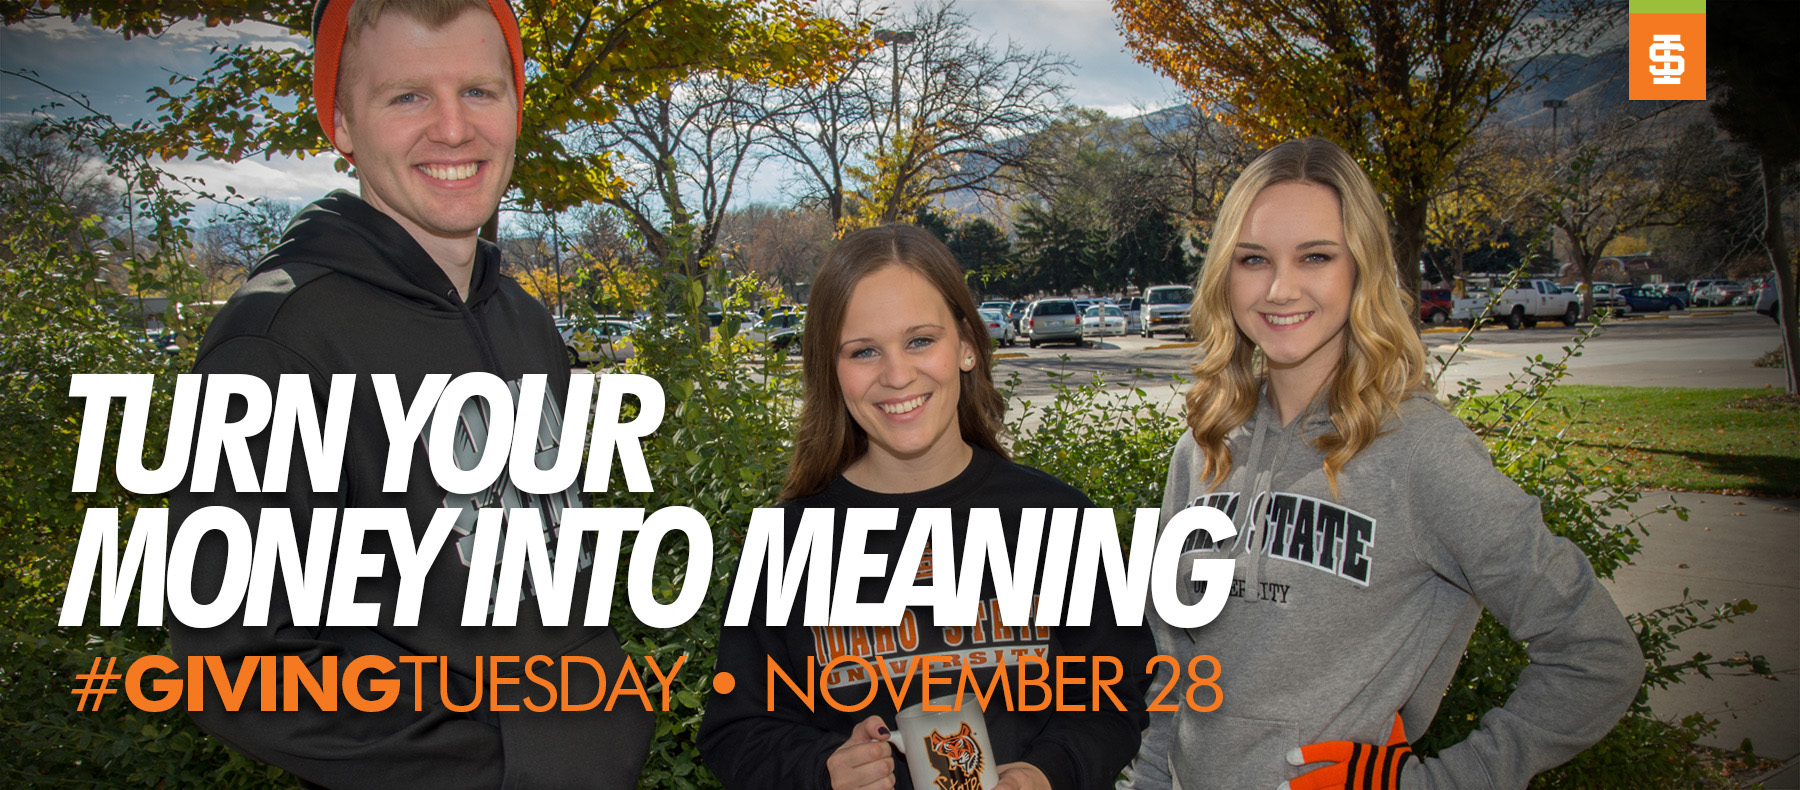 Turn your money into meaning #givingtuesday November 28